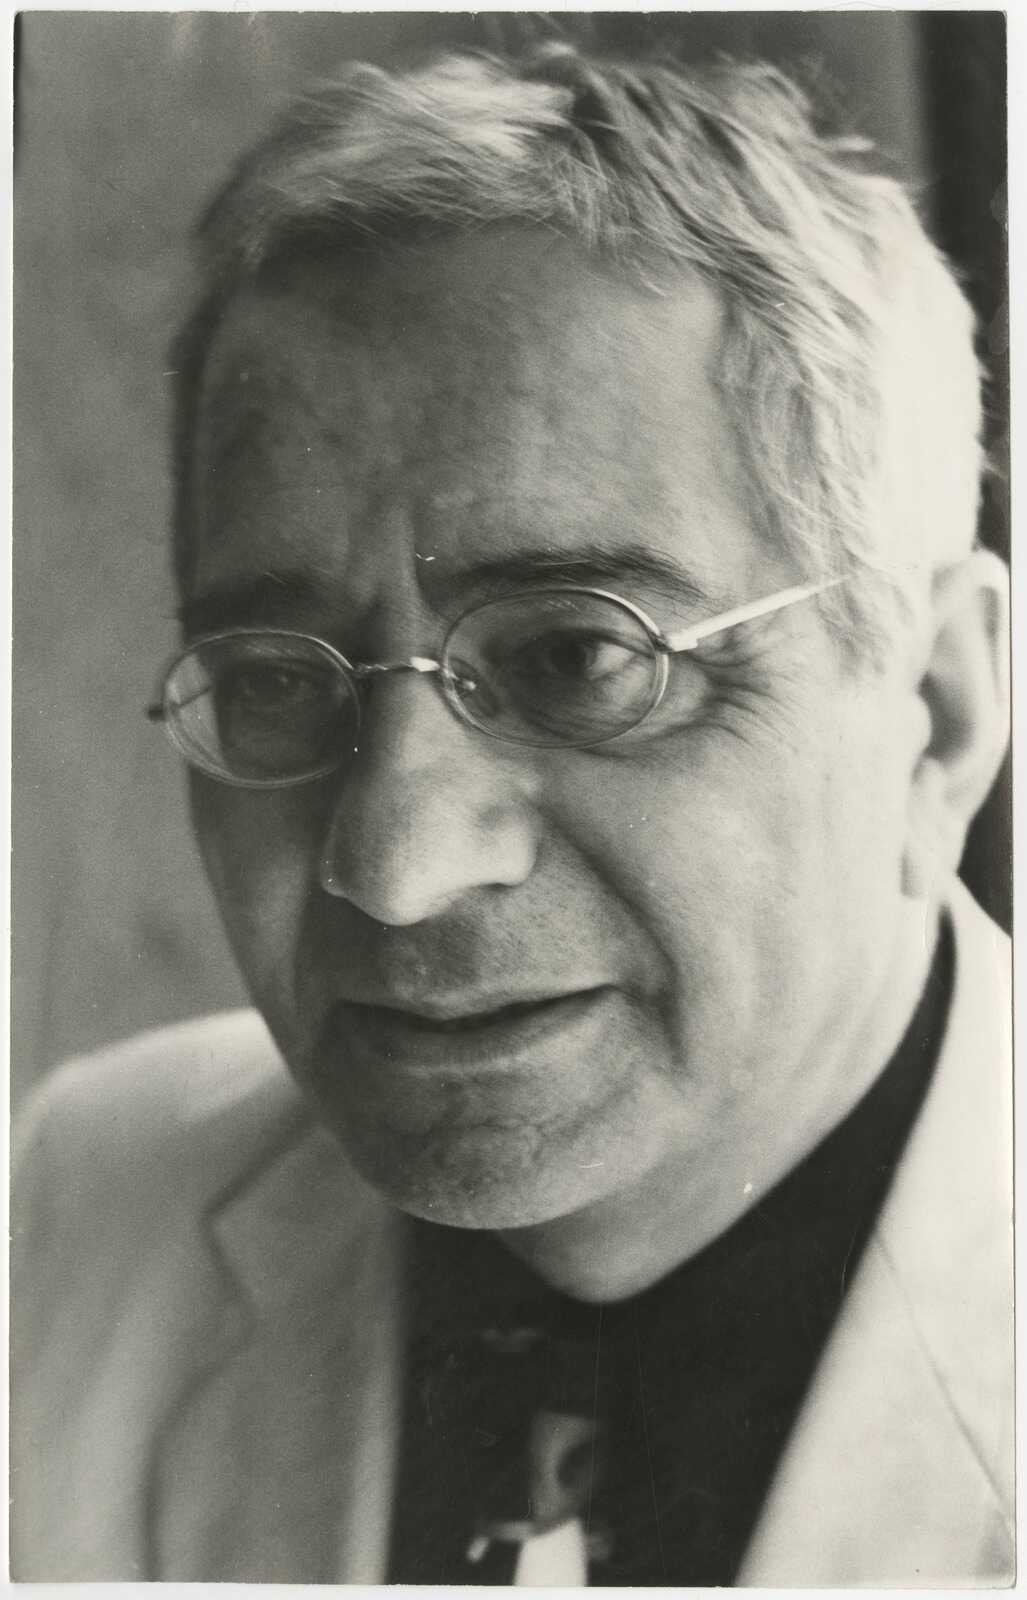 image for Melik, Rouben (1921-2007)